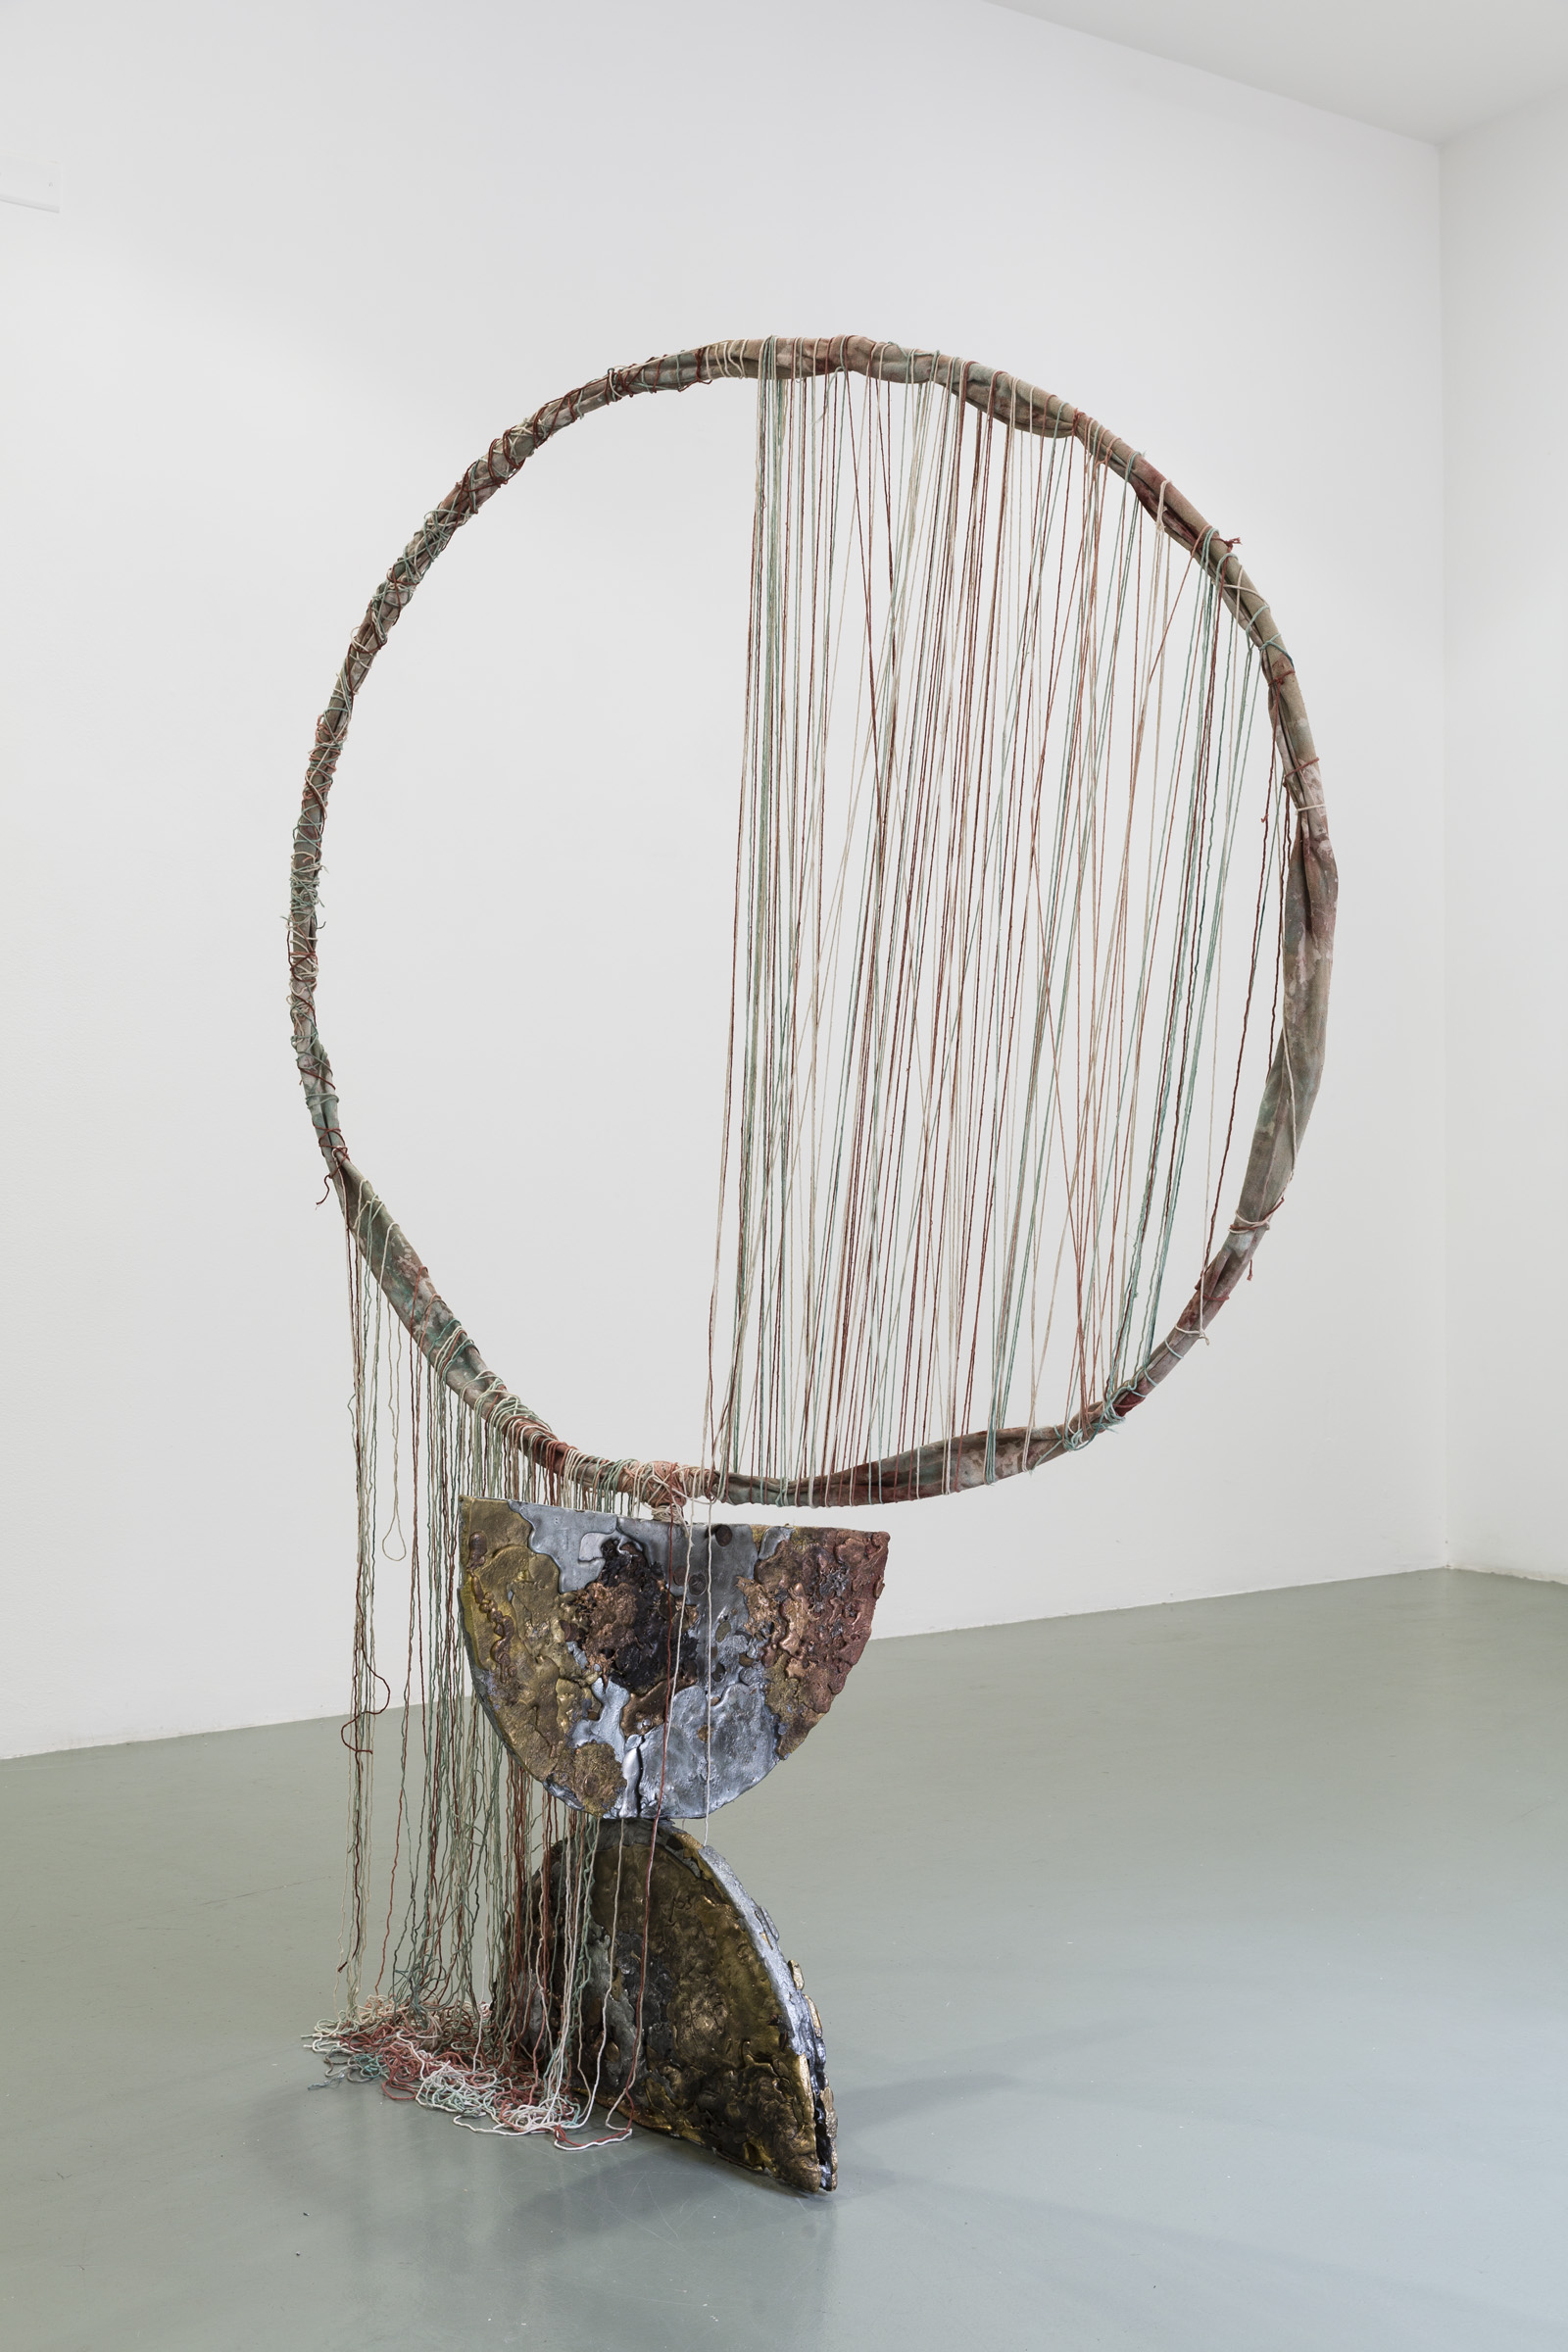 Jory Rabinovitz,  Given (Halved),  2015, melted currency, unsold sculptures, Verdigris, iron oxide, zinc white, 48 x 48 x 72 in.